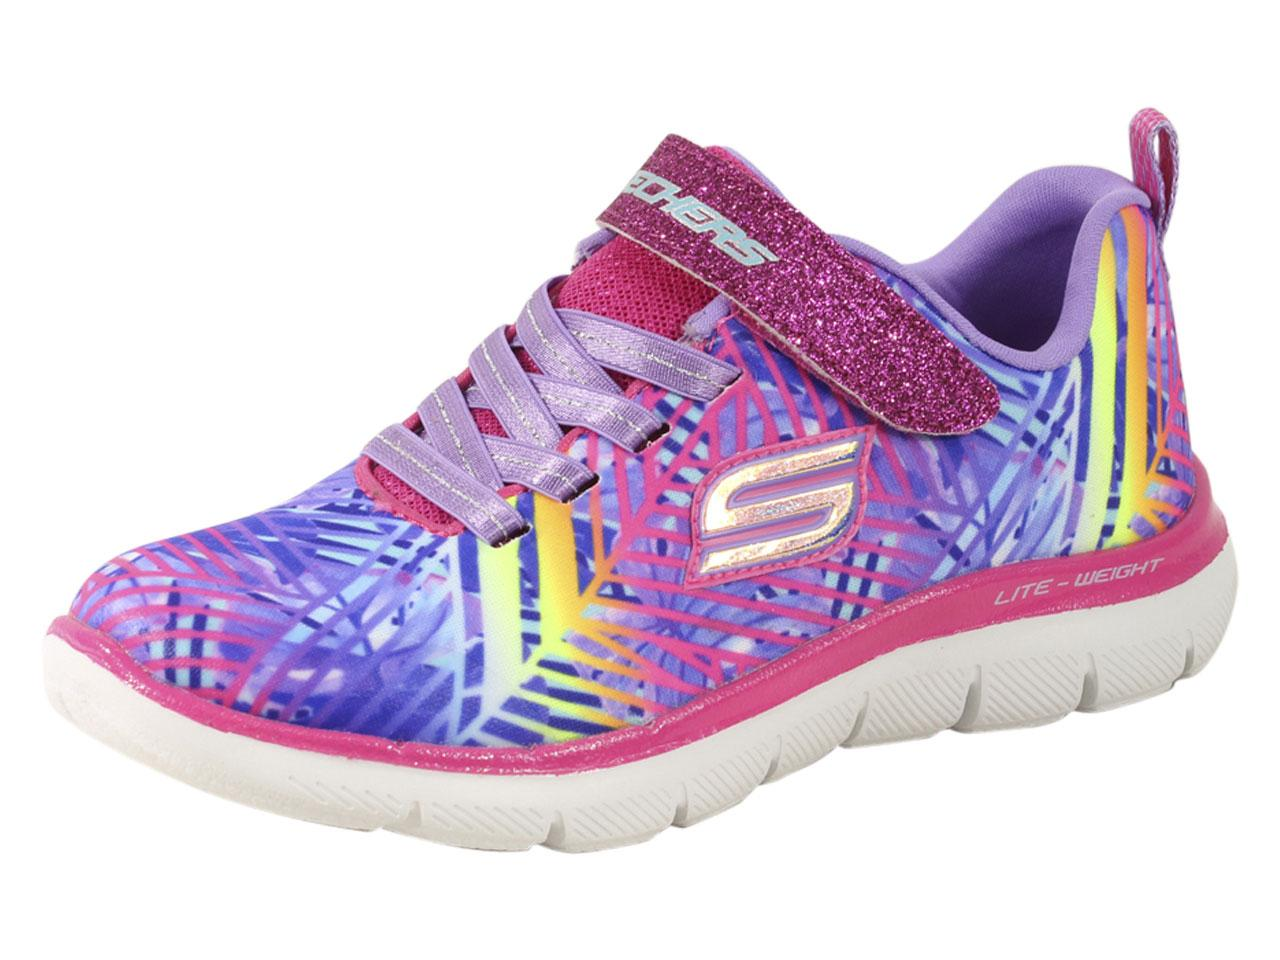 Skechers Little Girl's Skech Appeal 2.0 Tropic Tidbit Memory Foam Sneakers Shoes